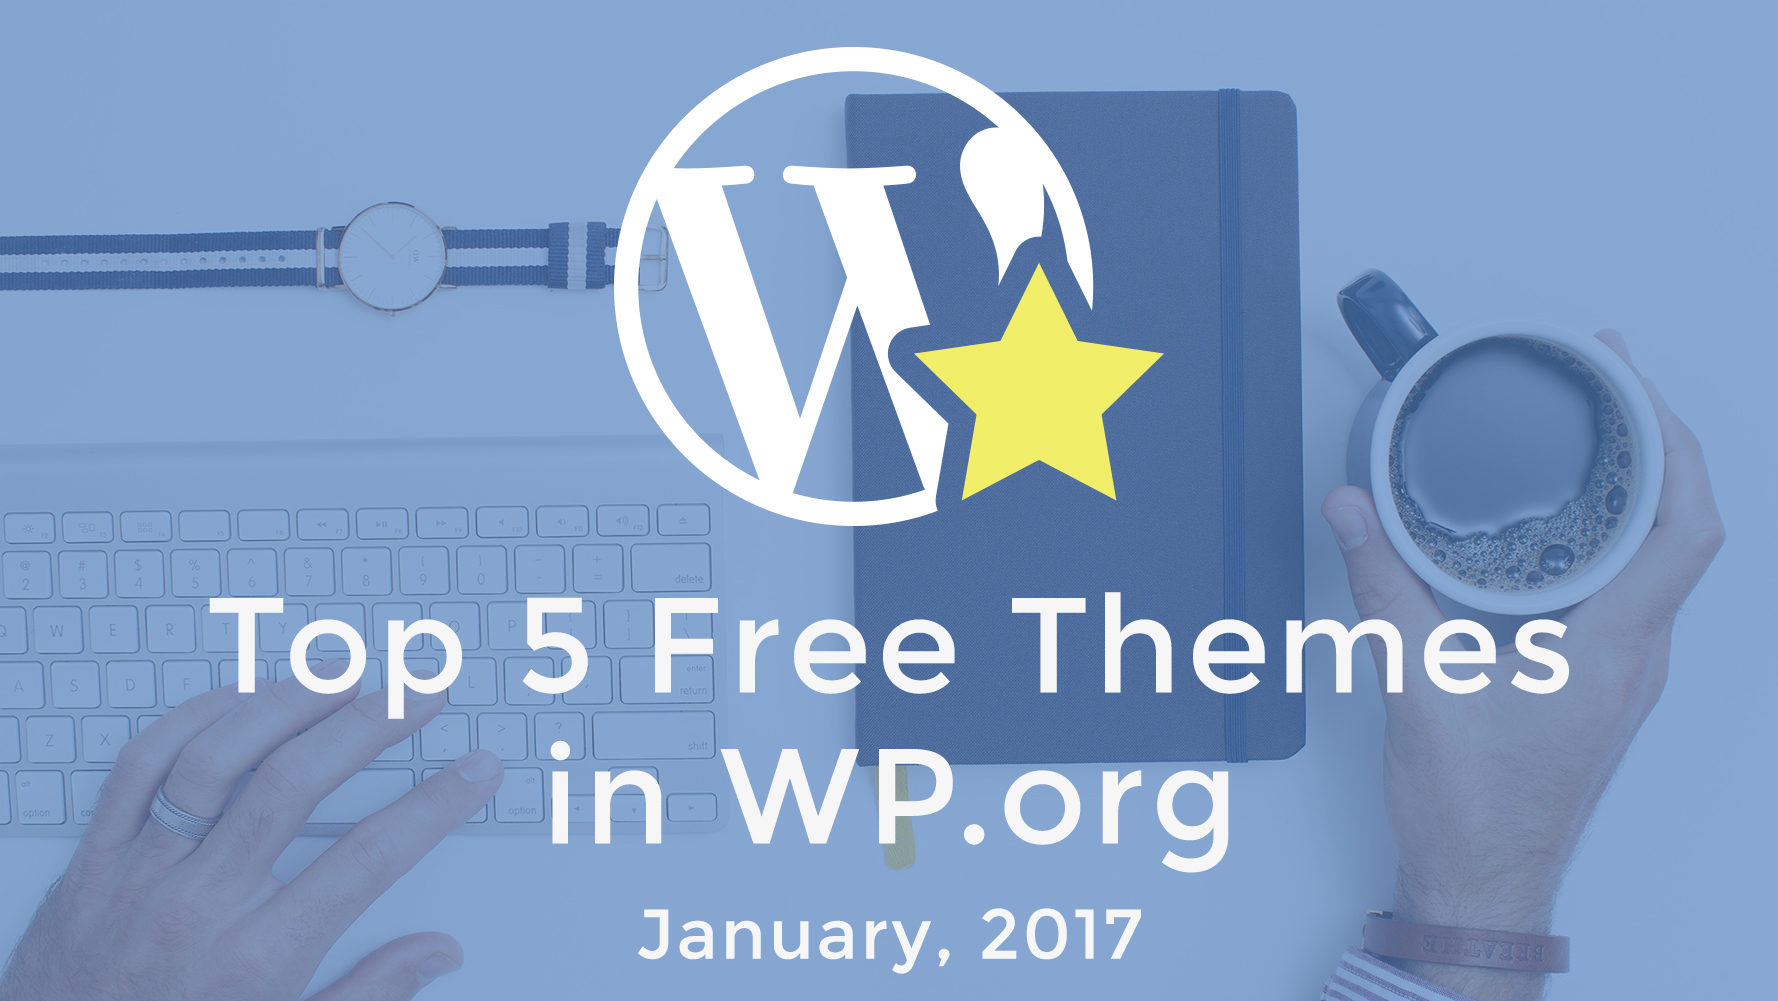 Top 5 Free Themes in WordPress.org – January 2017